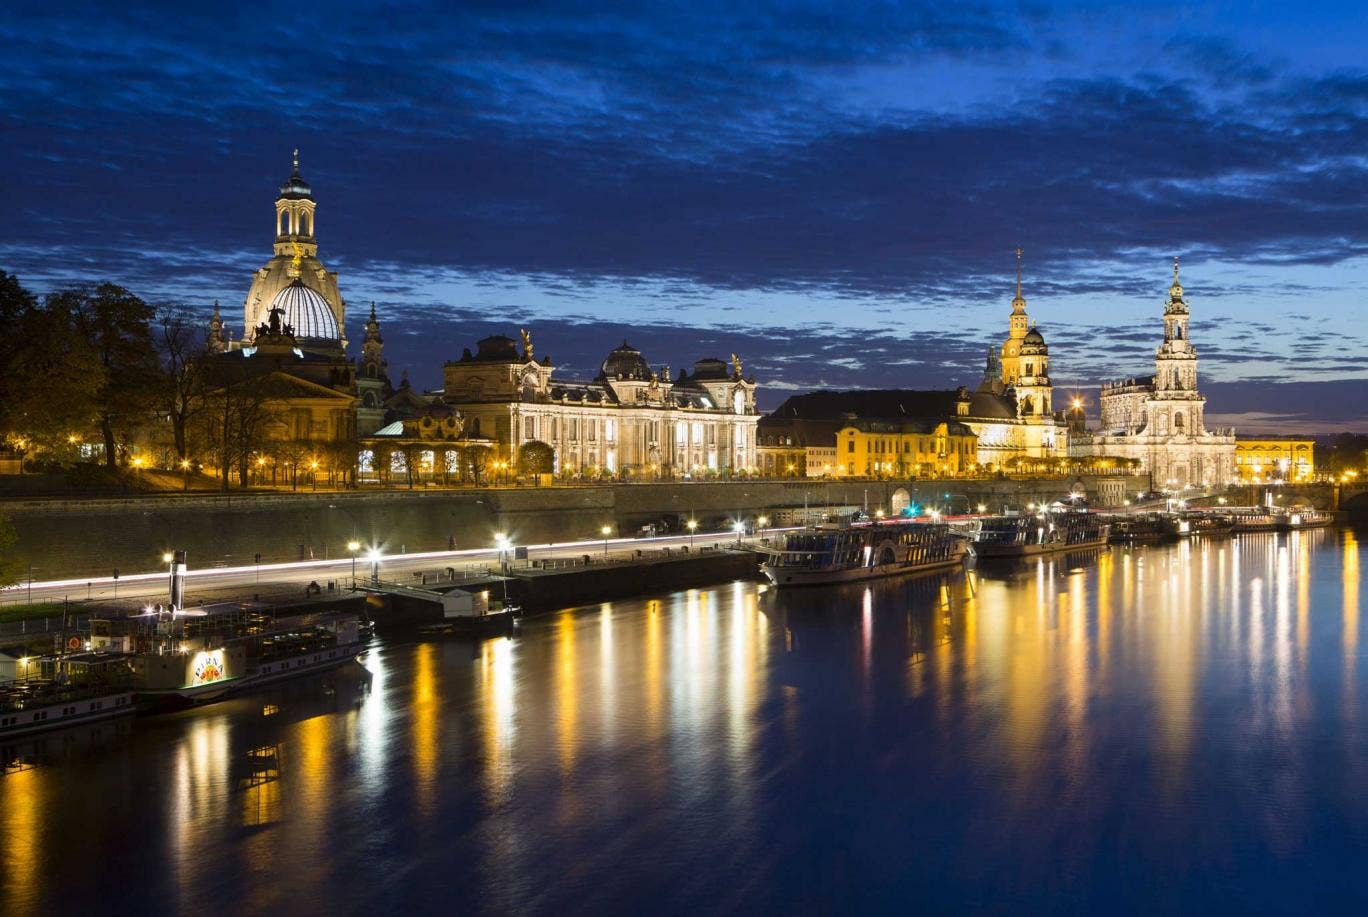 Which English city was twinned with Dresden in 1959 to mark their Second World War experiences?